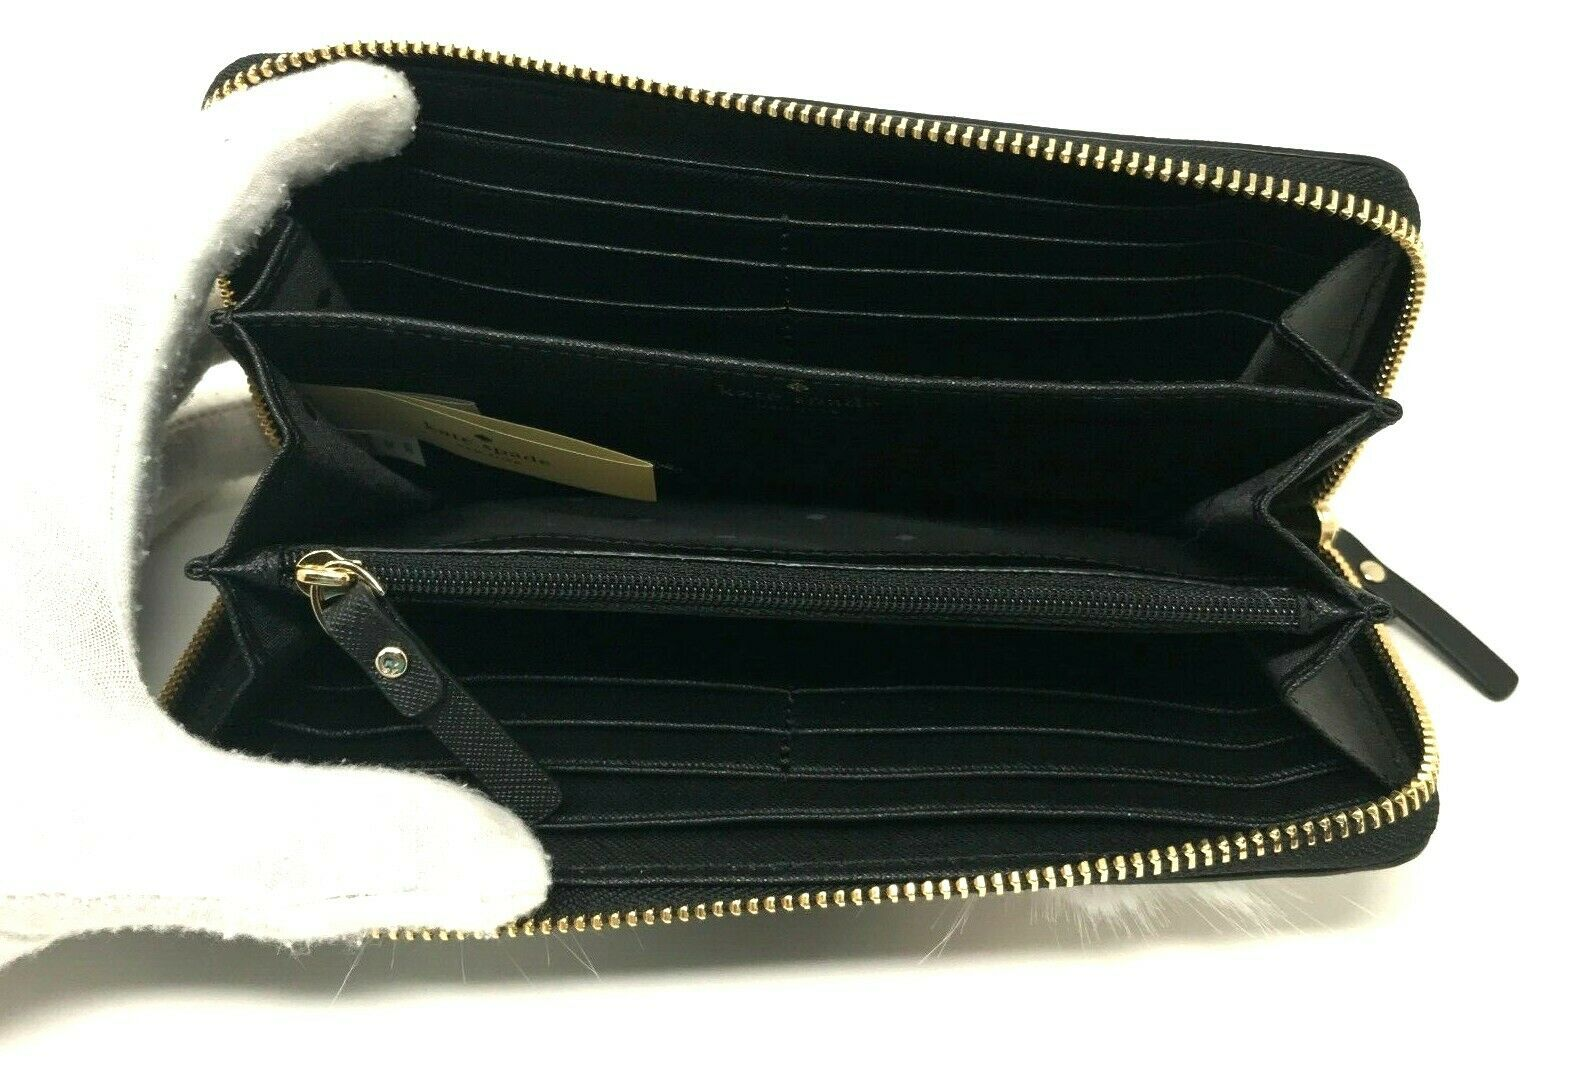 Kate Spade Dashing Beauty Penguin Lacey Black Leather Wallet PWRU7009 $198